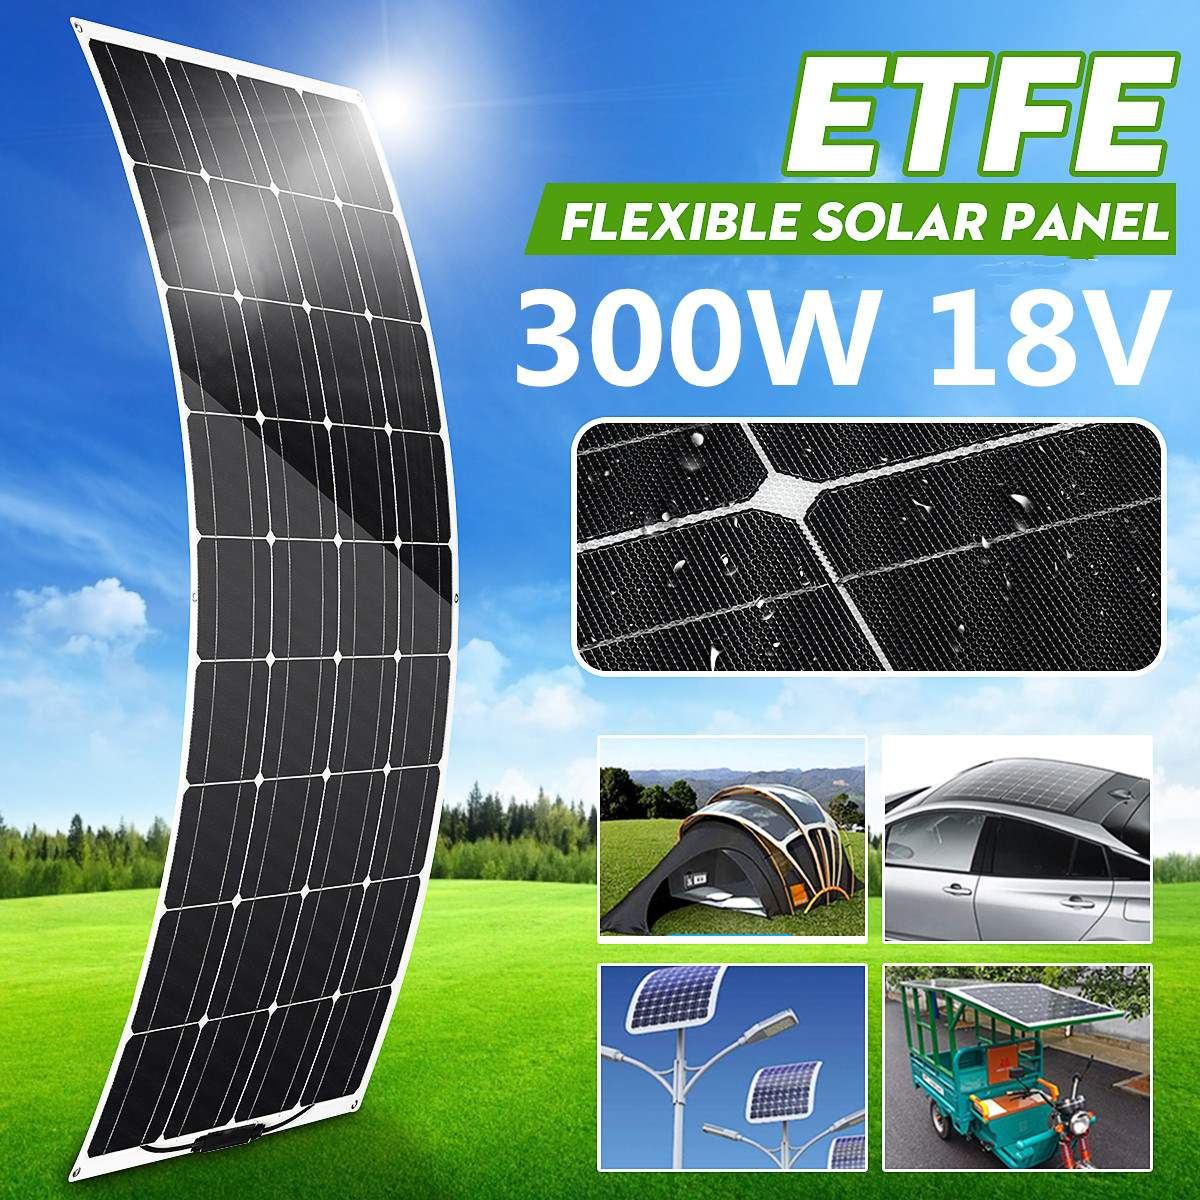 <font><b>300W</b></font> Semi-flexible <font><b>Solar</b></font> <font><b>Panel</b></font> 18V Monocrystalline <font><b>Solar</b></font> Cell DIY Module Cable Outdoor Connector Battery Charger Waterproof image